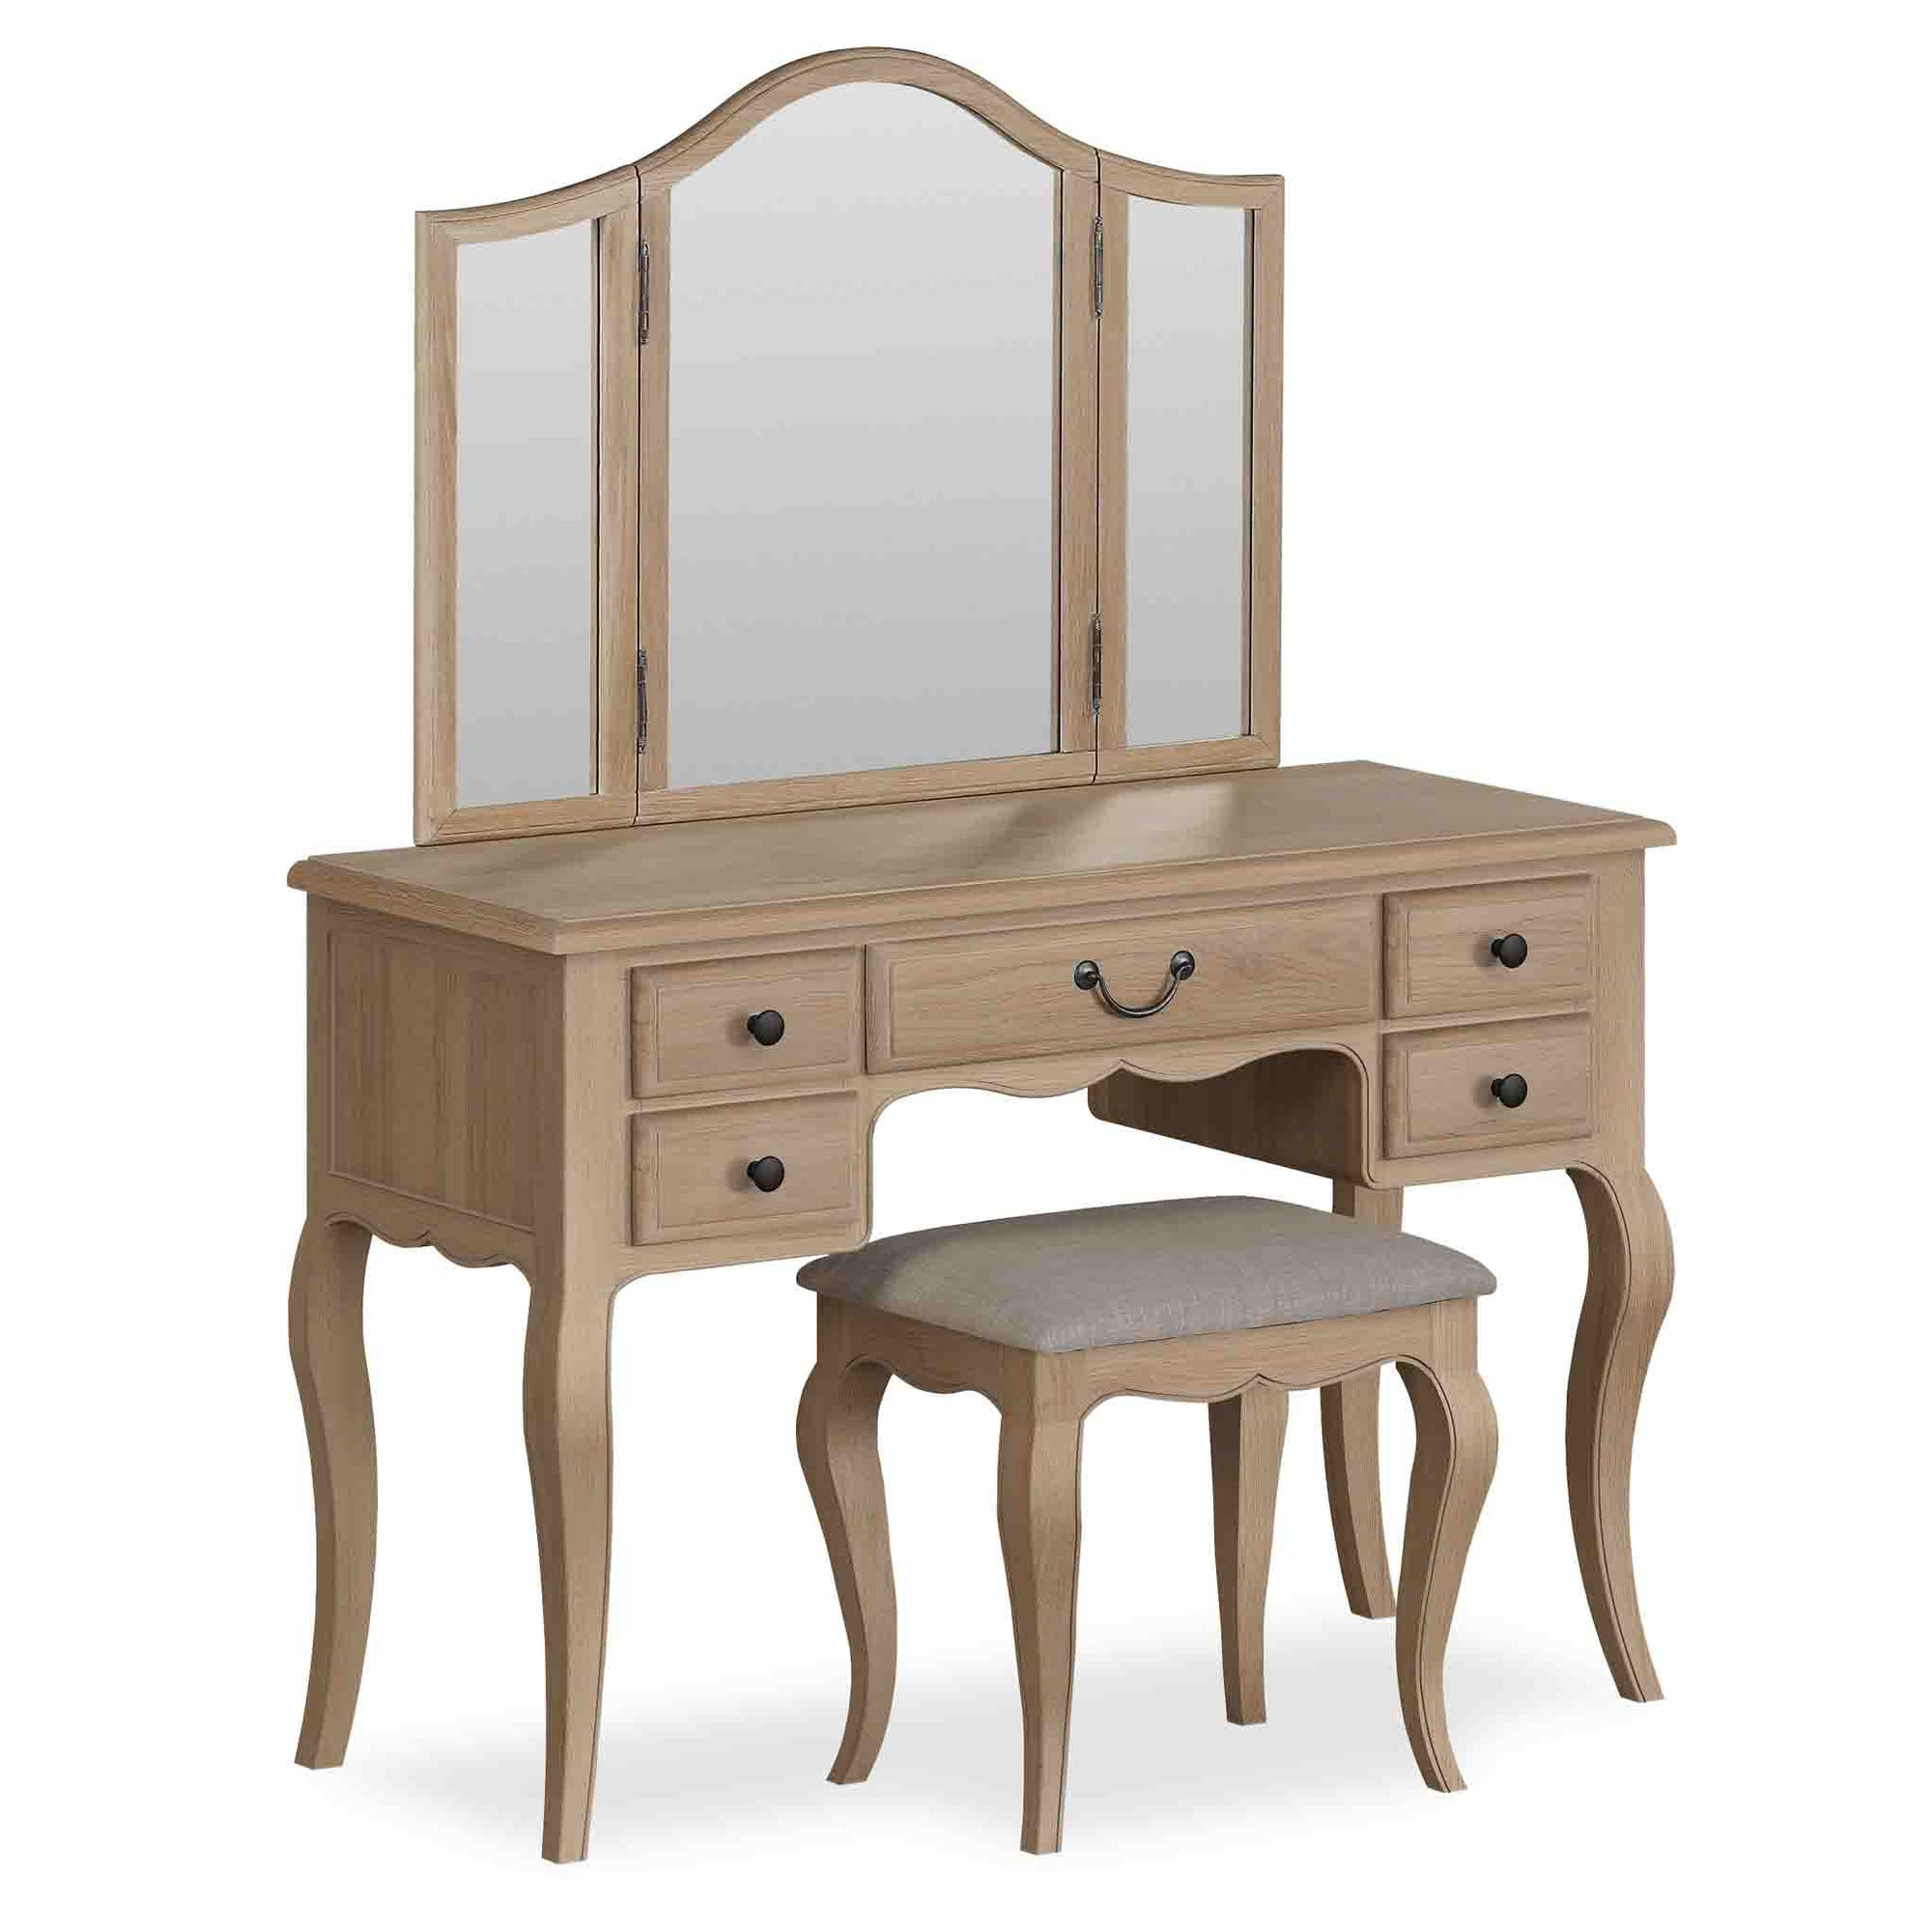 Harrogate Oak Dressing Table Set from Roseland Furniture